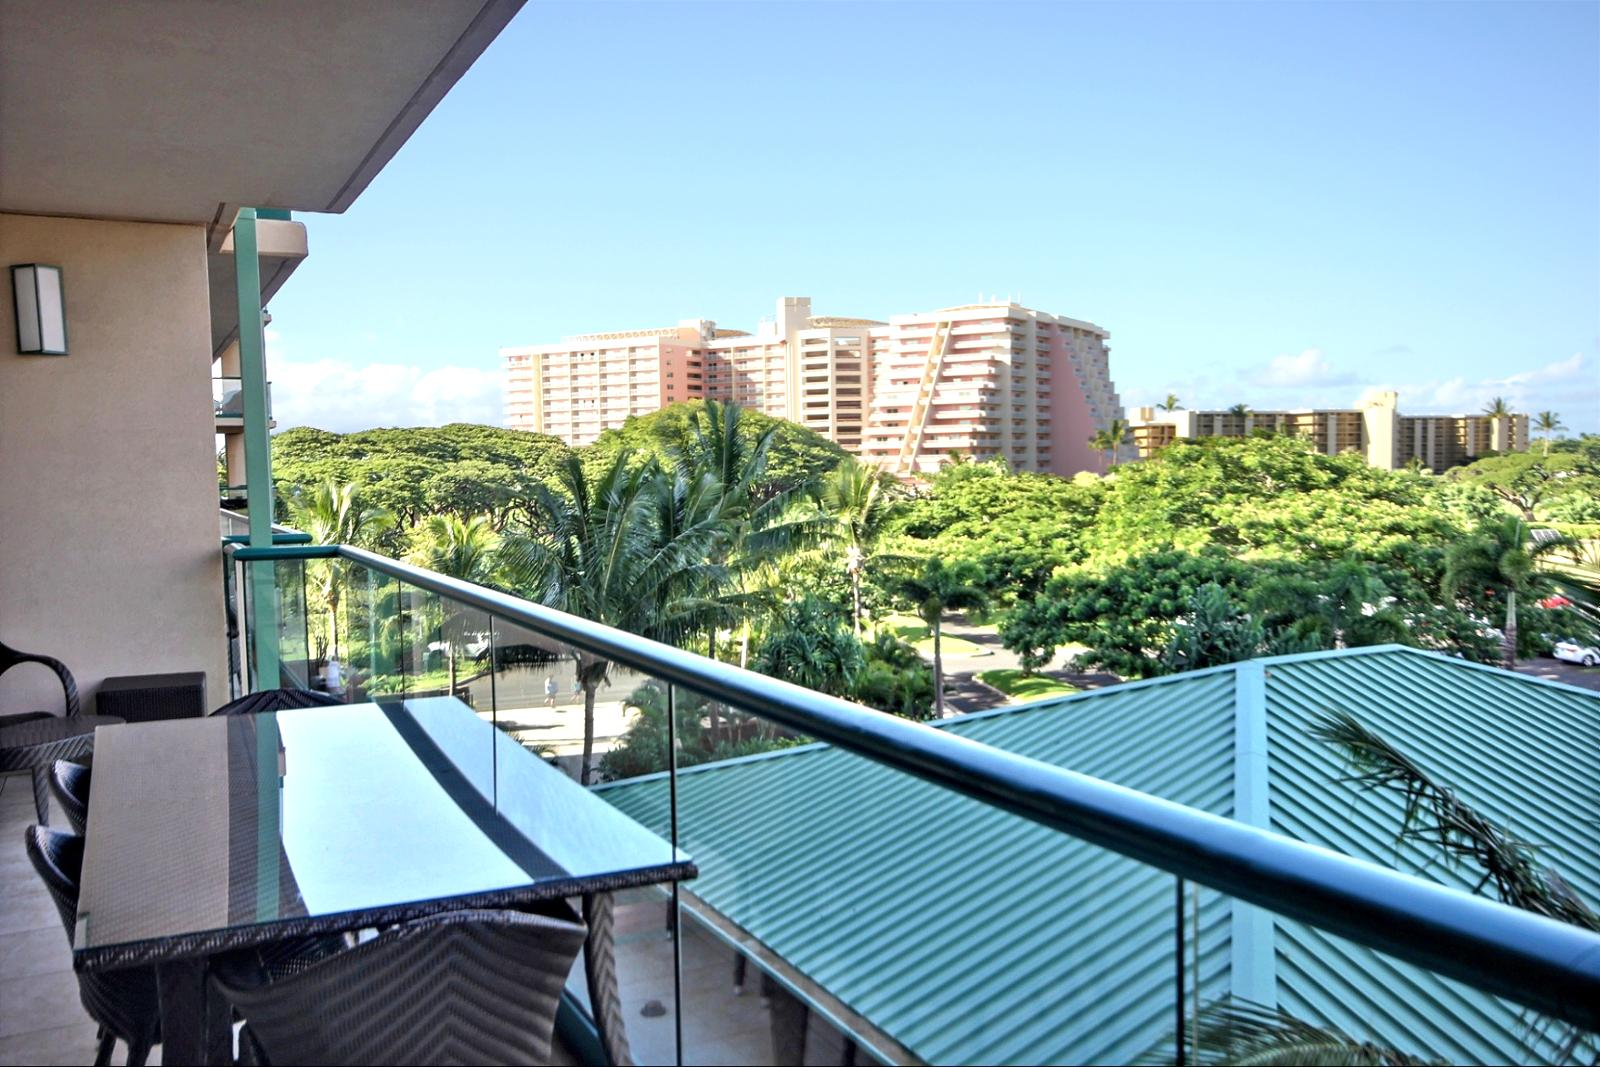 The view off the lanai looking to your left. Notice the large out door dining table with seating for four(4).